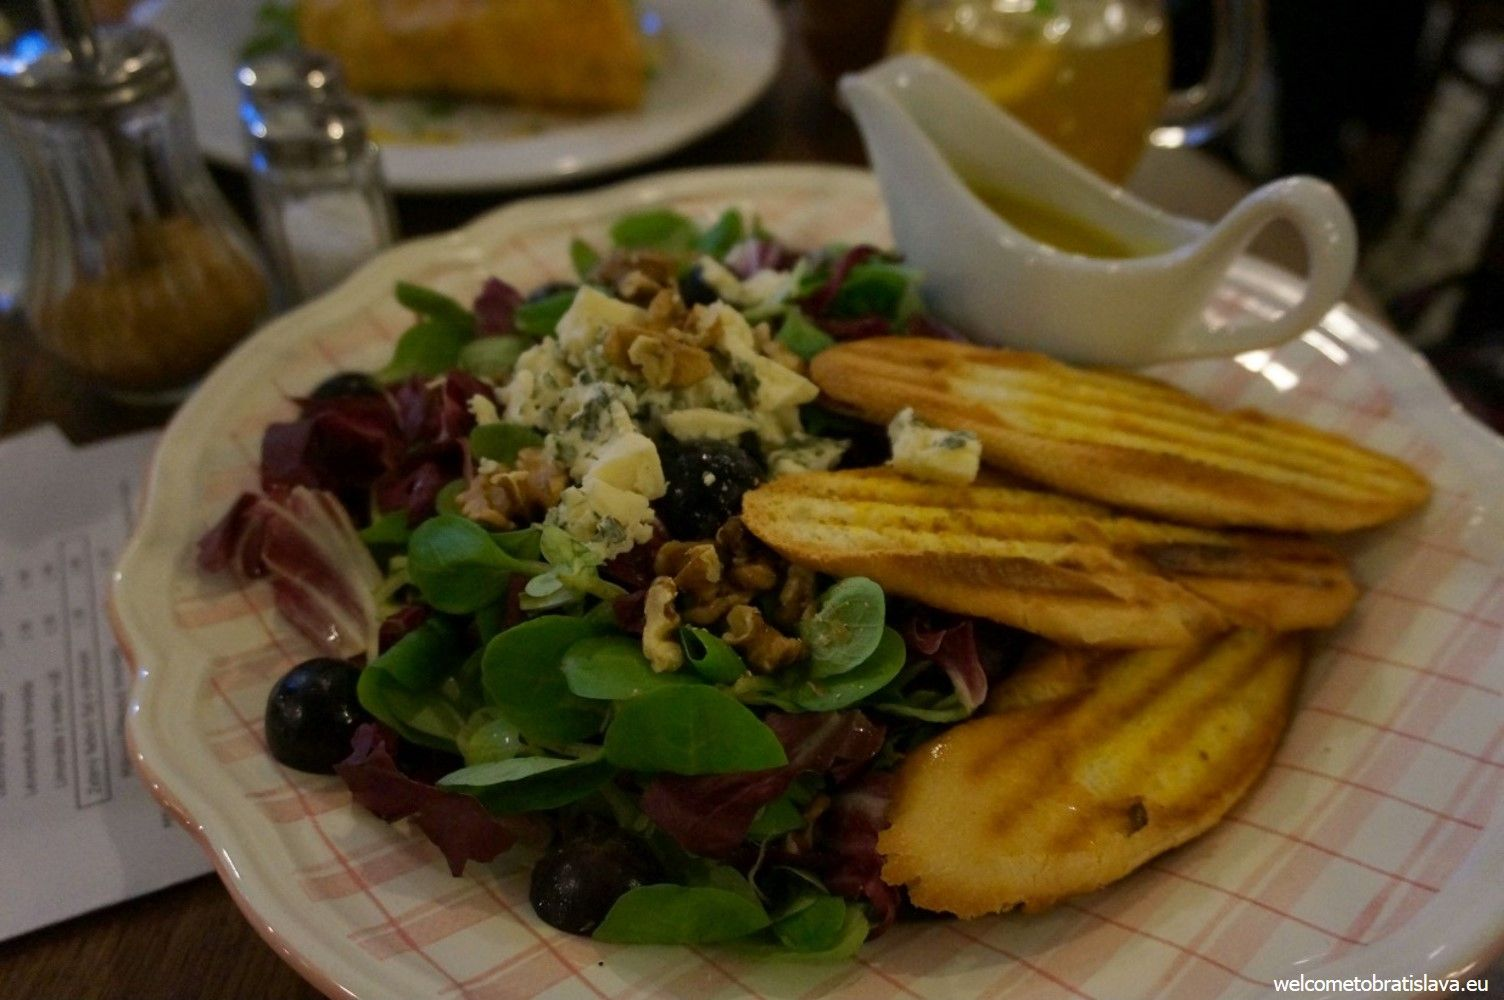 The lamb's lettuce salad with blue cheese, nuts, grapes and honey & mustard sauce